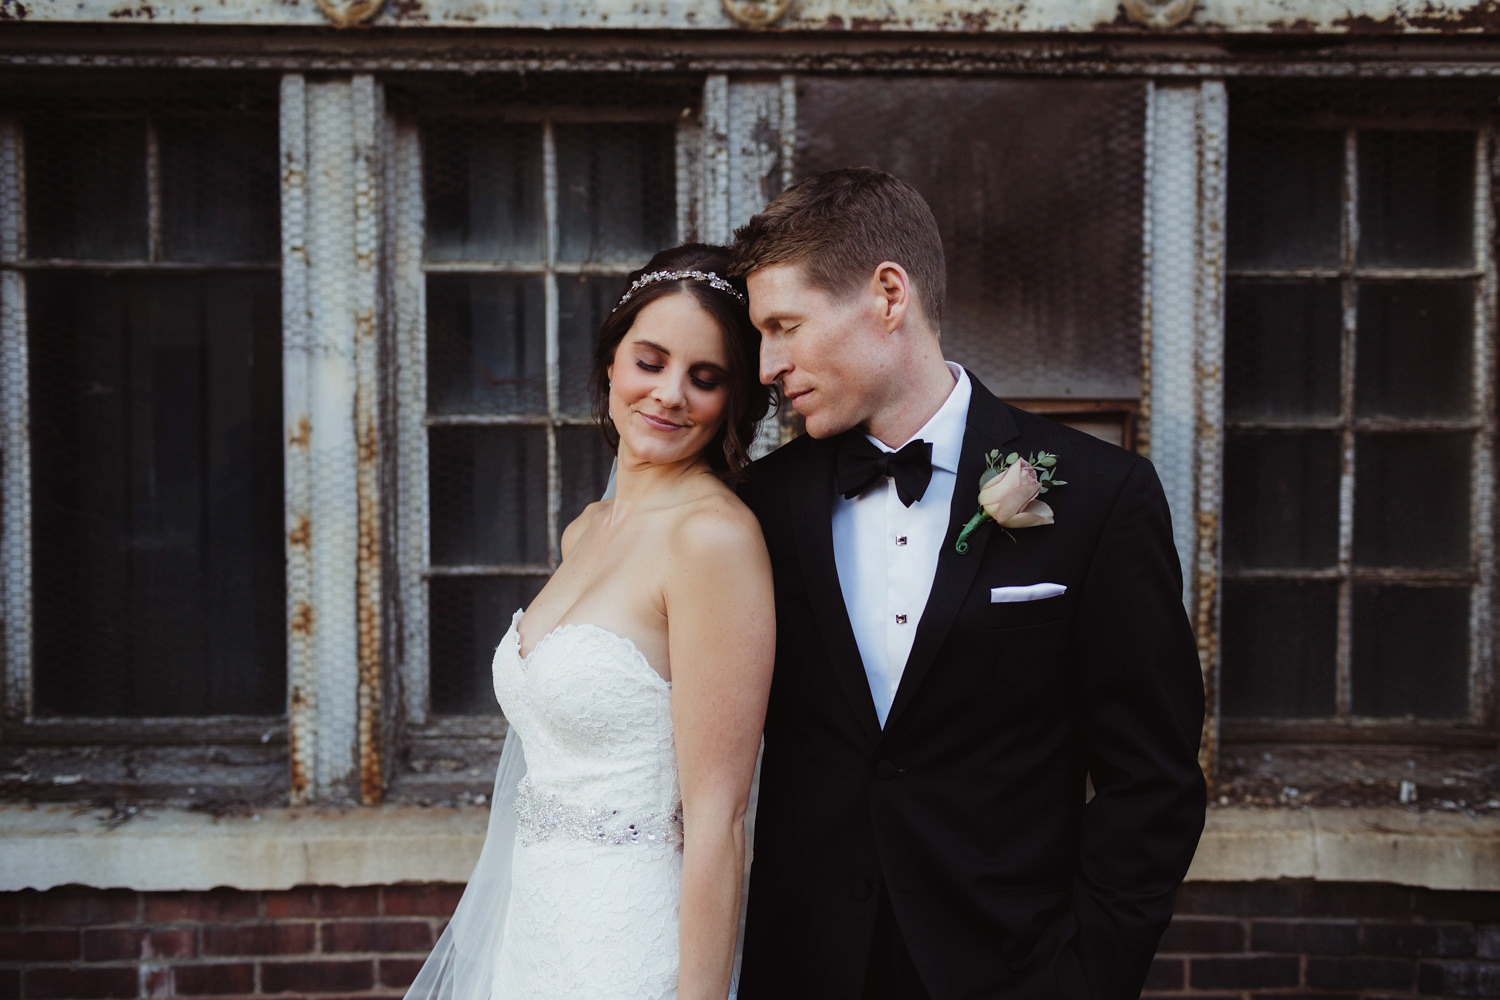 edgy and intimate couples portraits in the warehouse district of grand rapids michigan